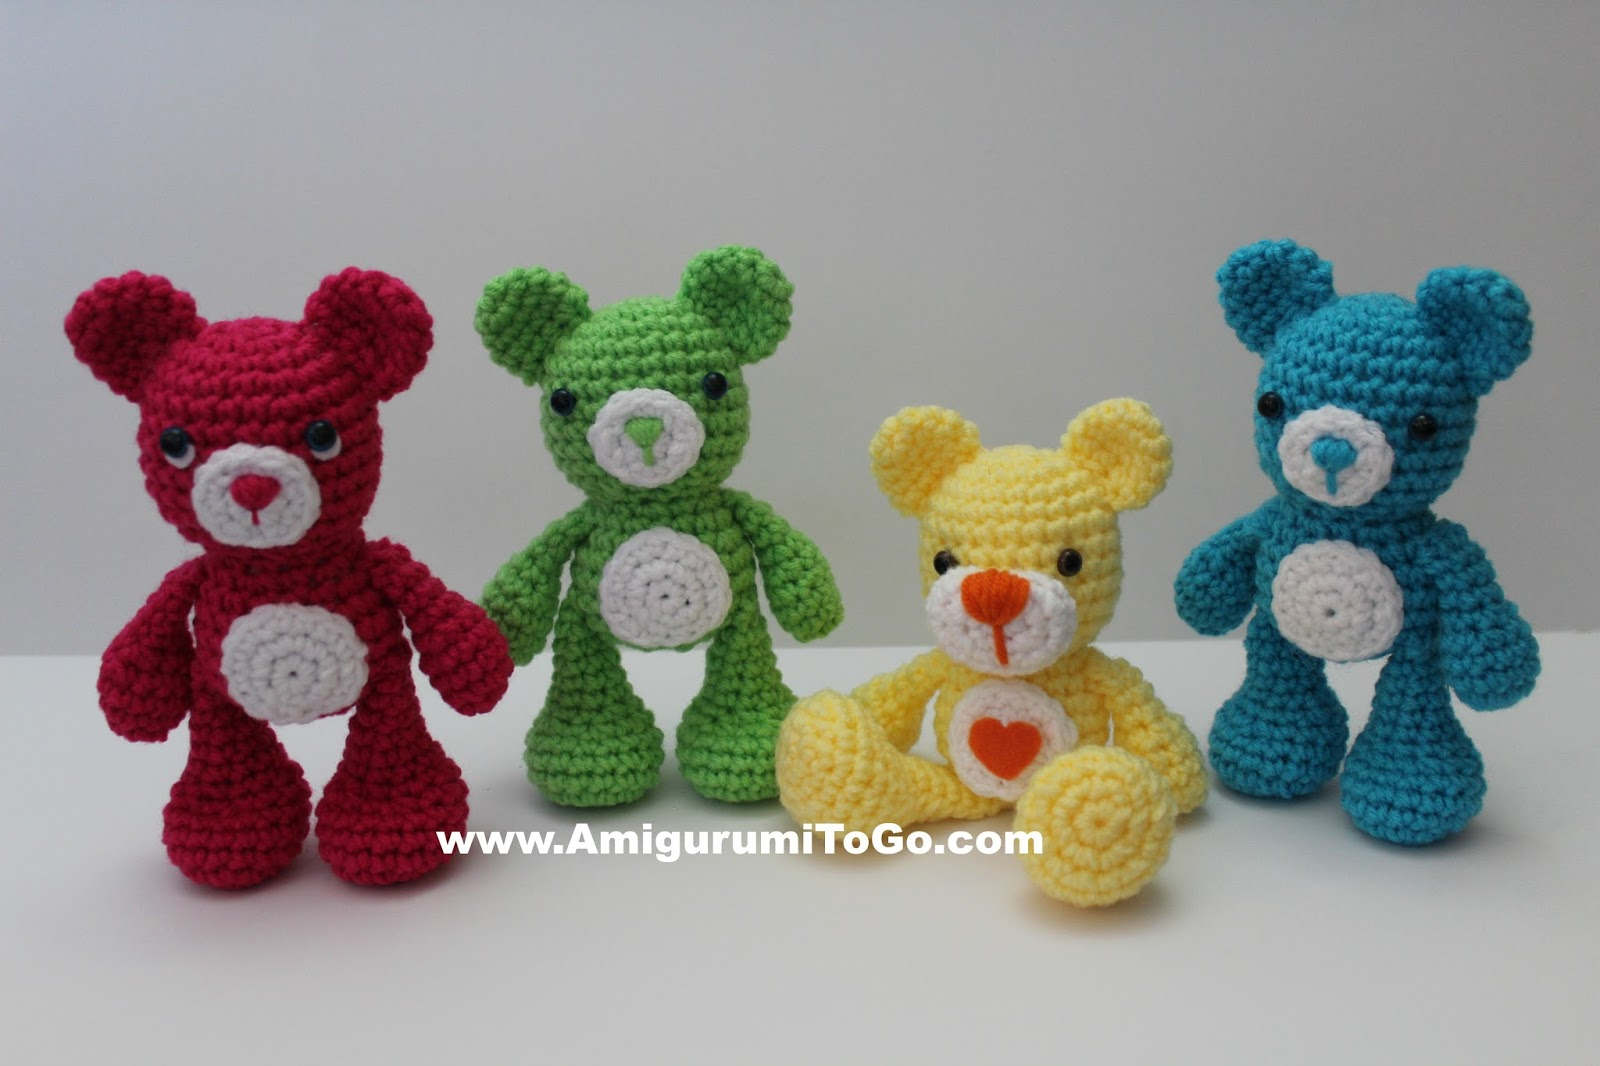 Amigurumi Teddy Bear Free Patterns : Crochet teddy bear written pattern and video ~ amigurumi to go